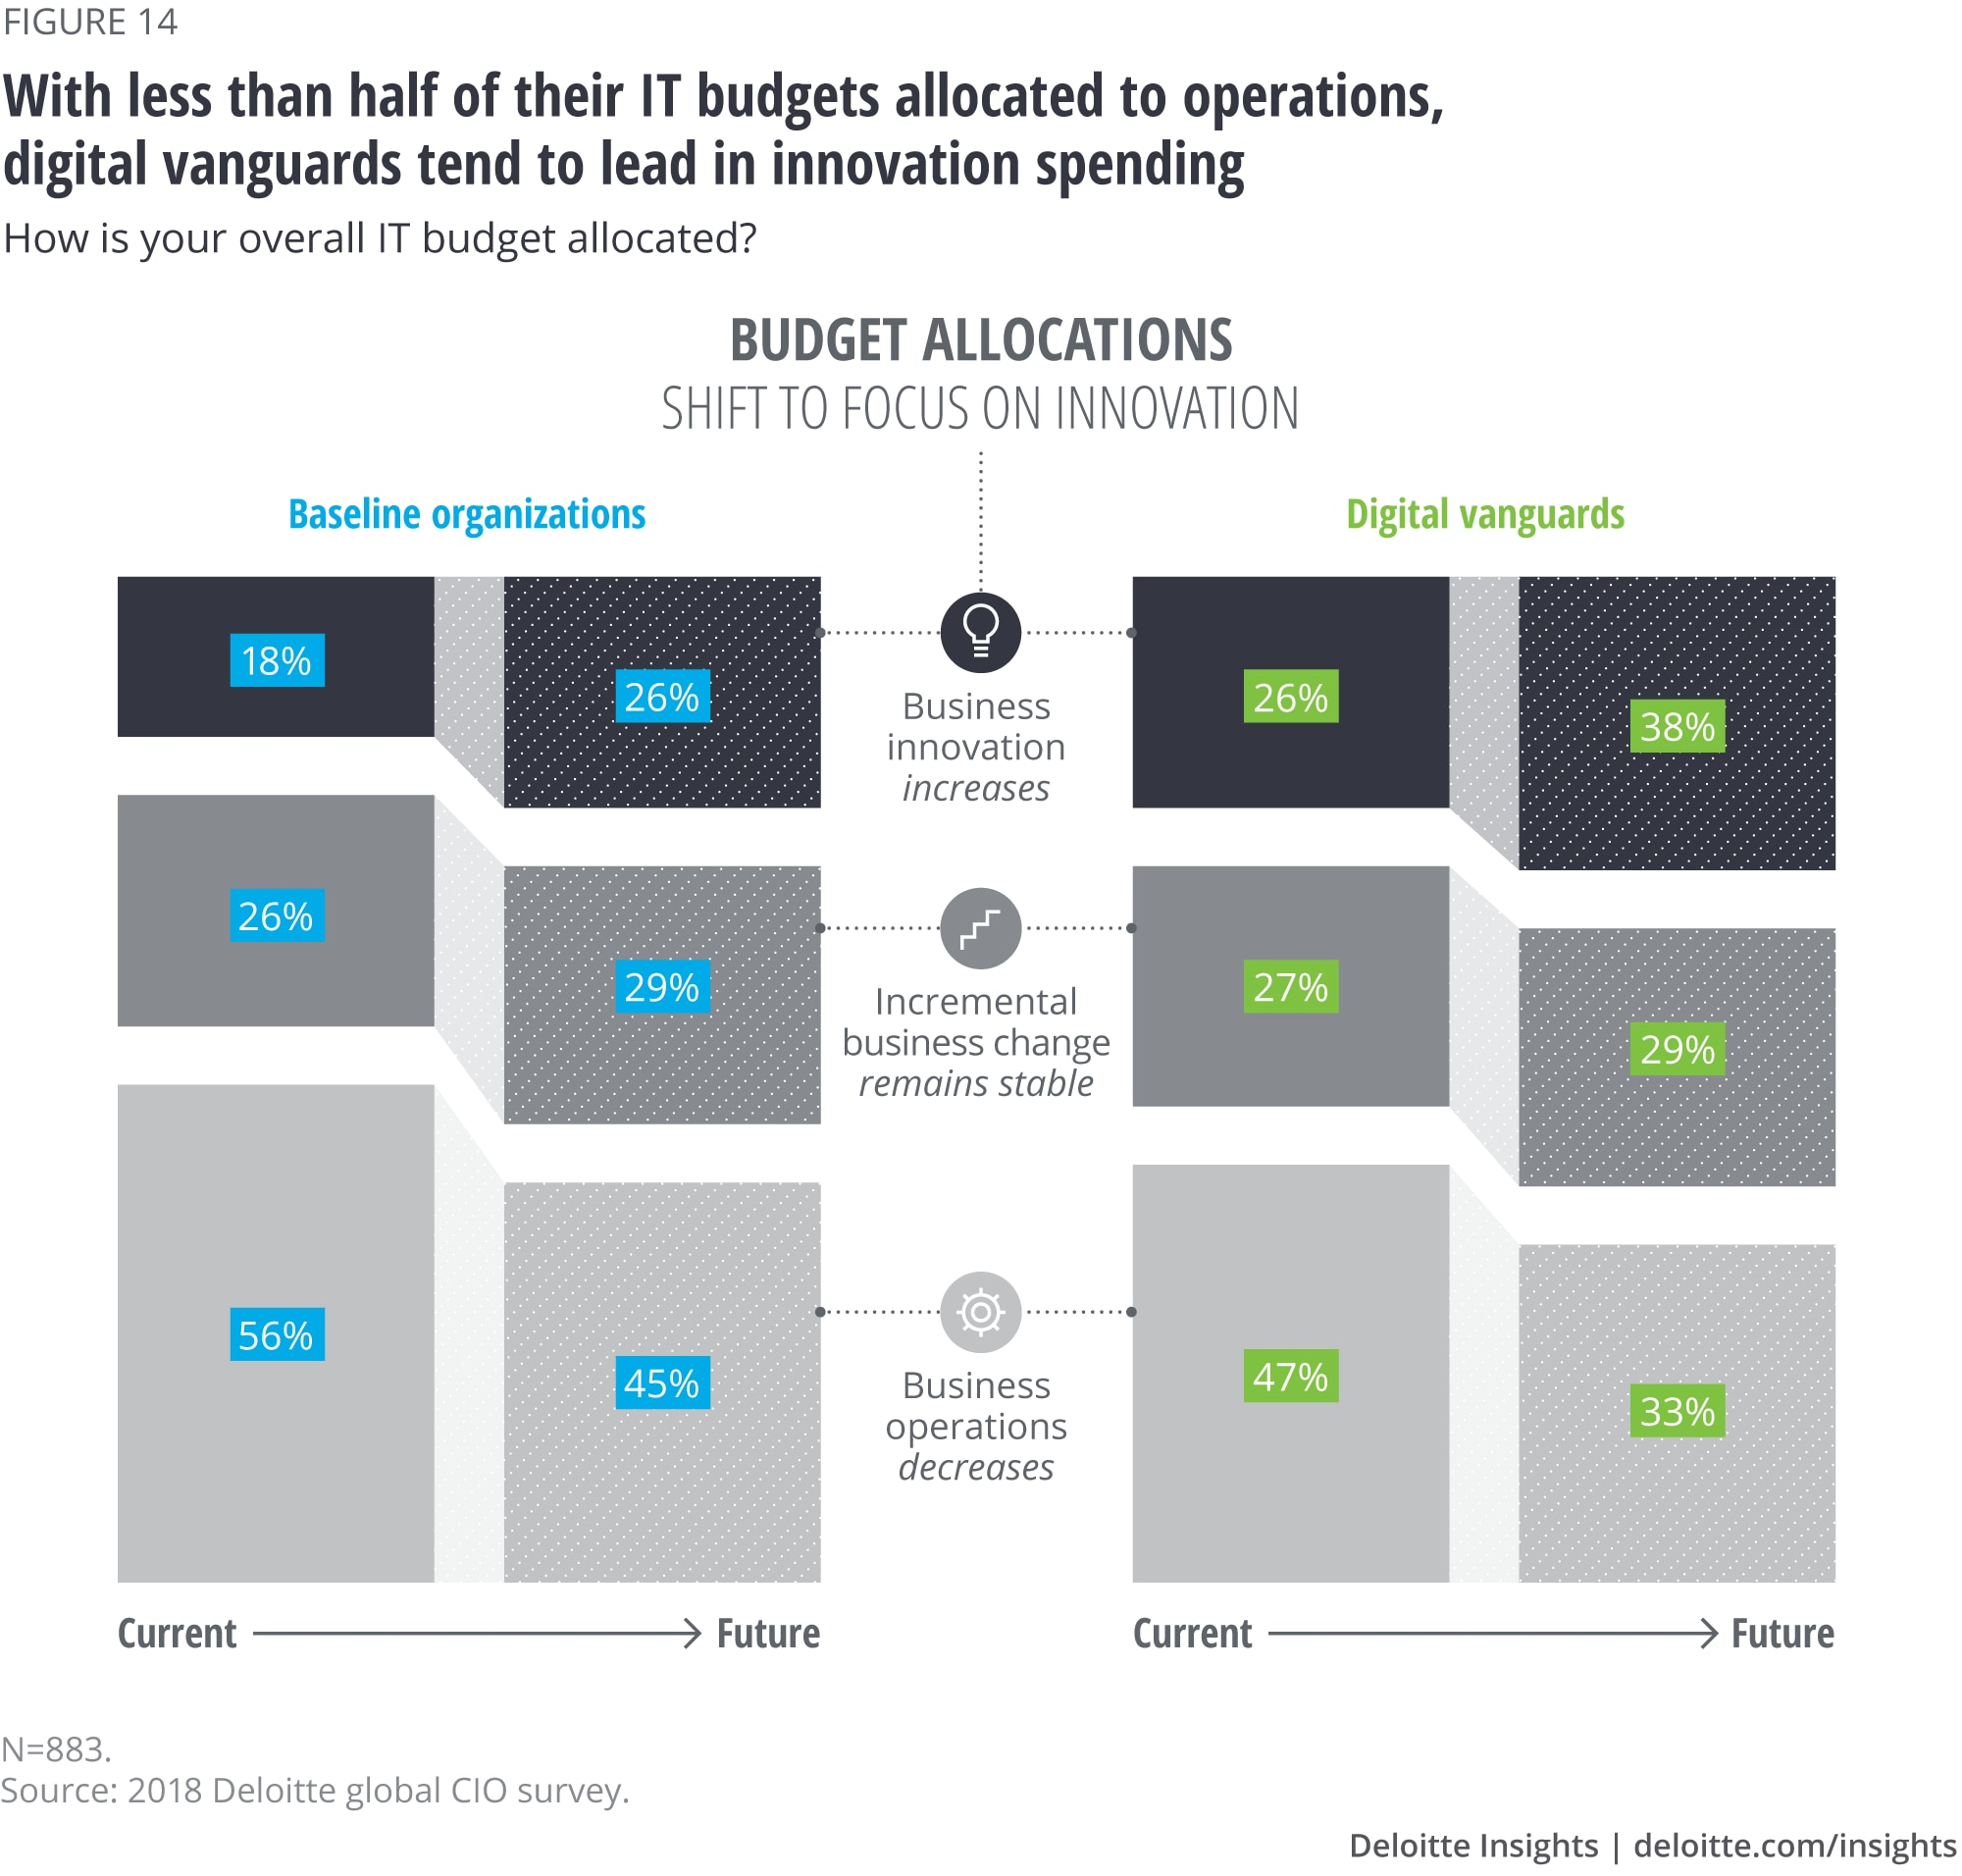 With less than half of their IT budgets allocated to operations, digital vanguards tend to lead in innovation spending